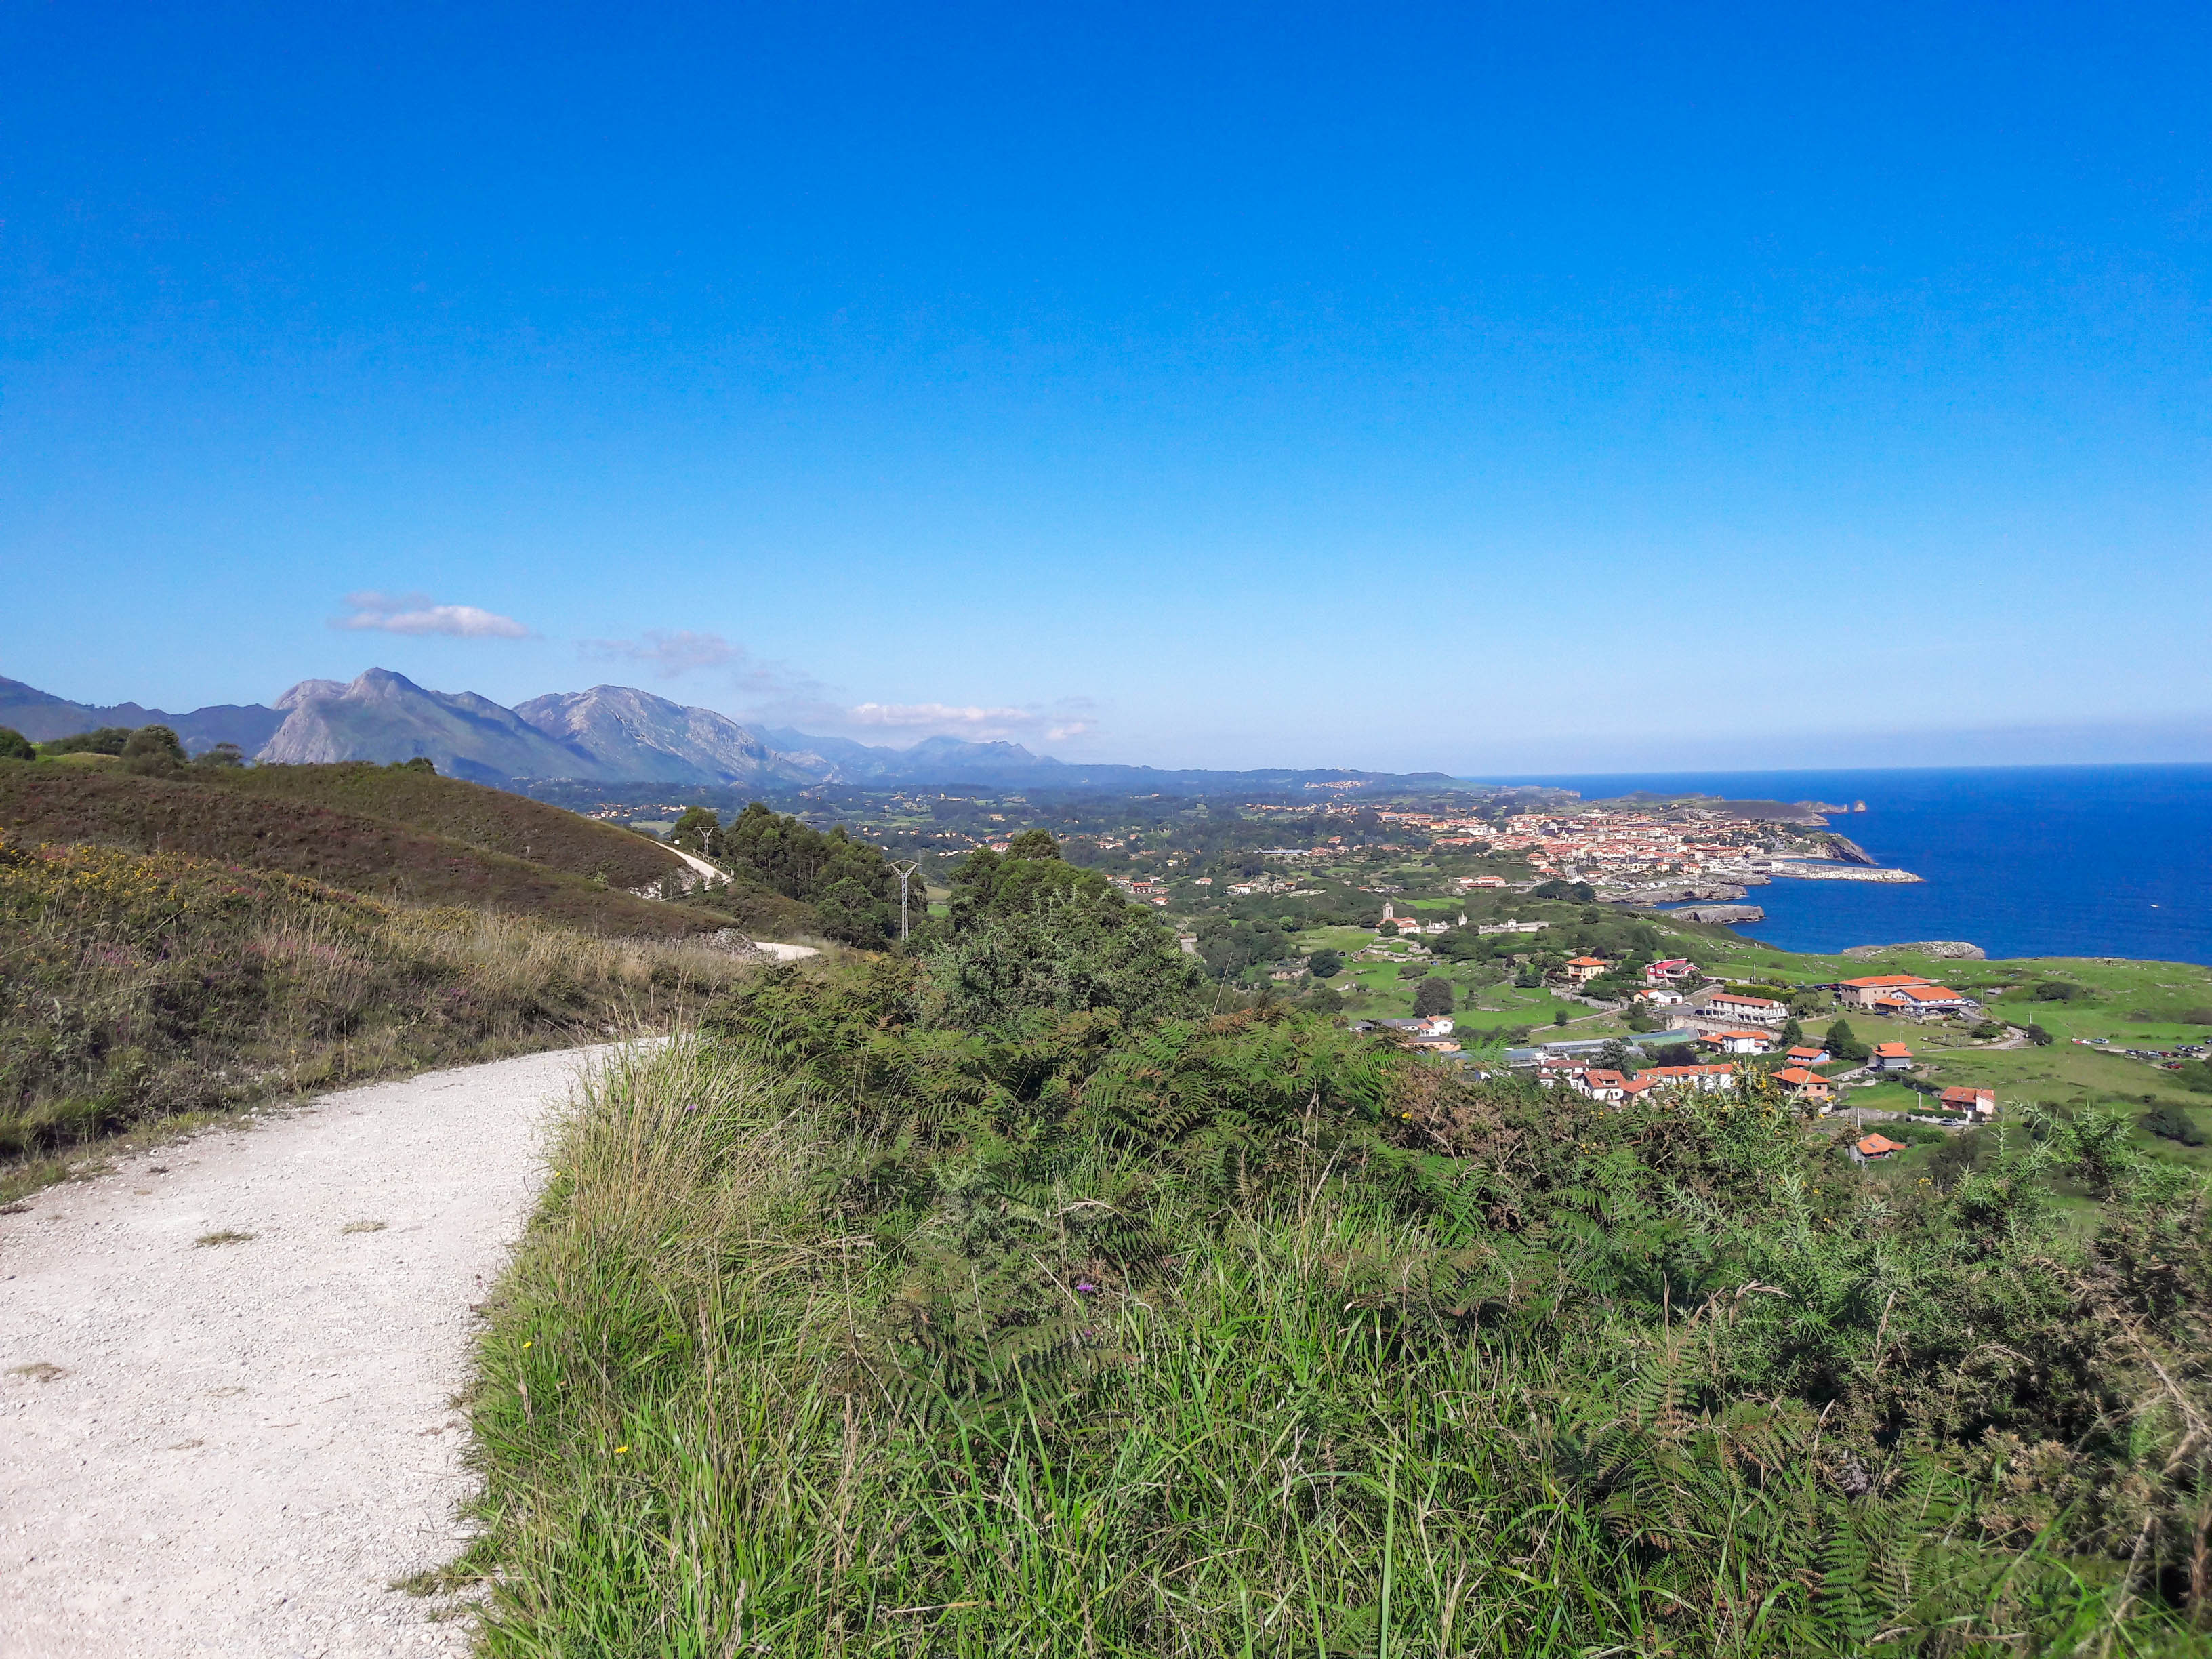 The approach to Llanes